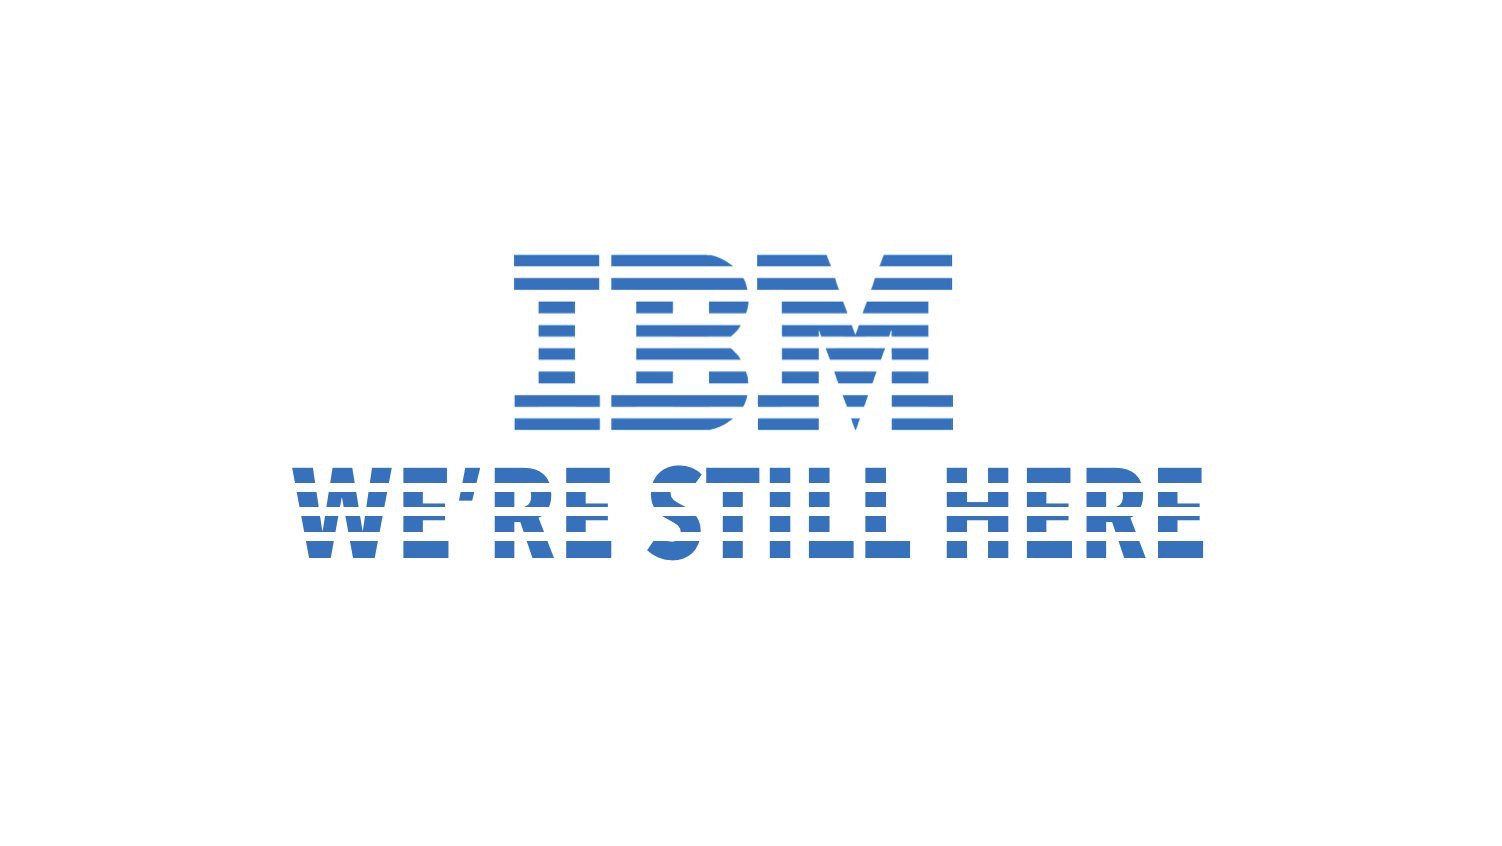 IBM We are still here